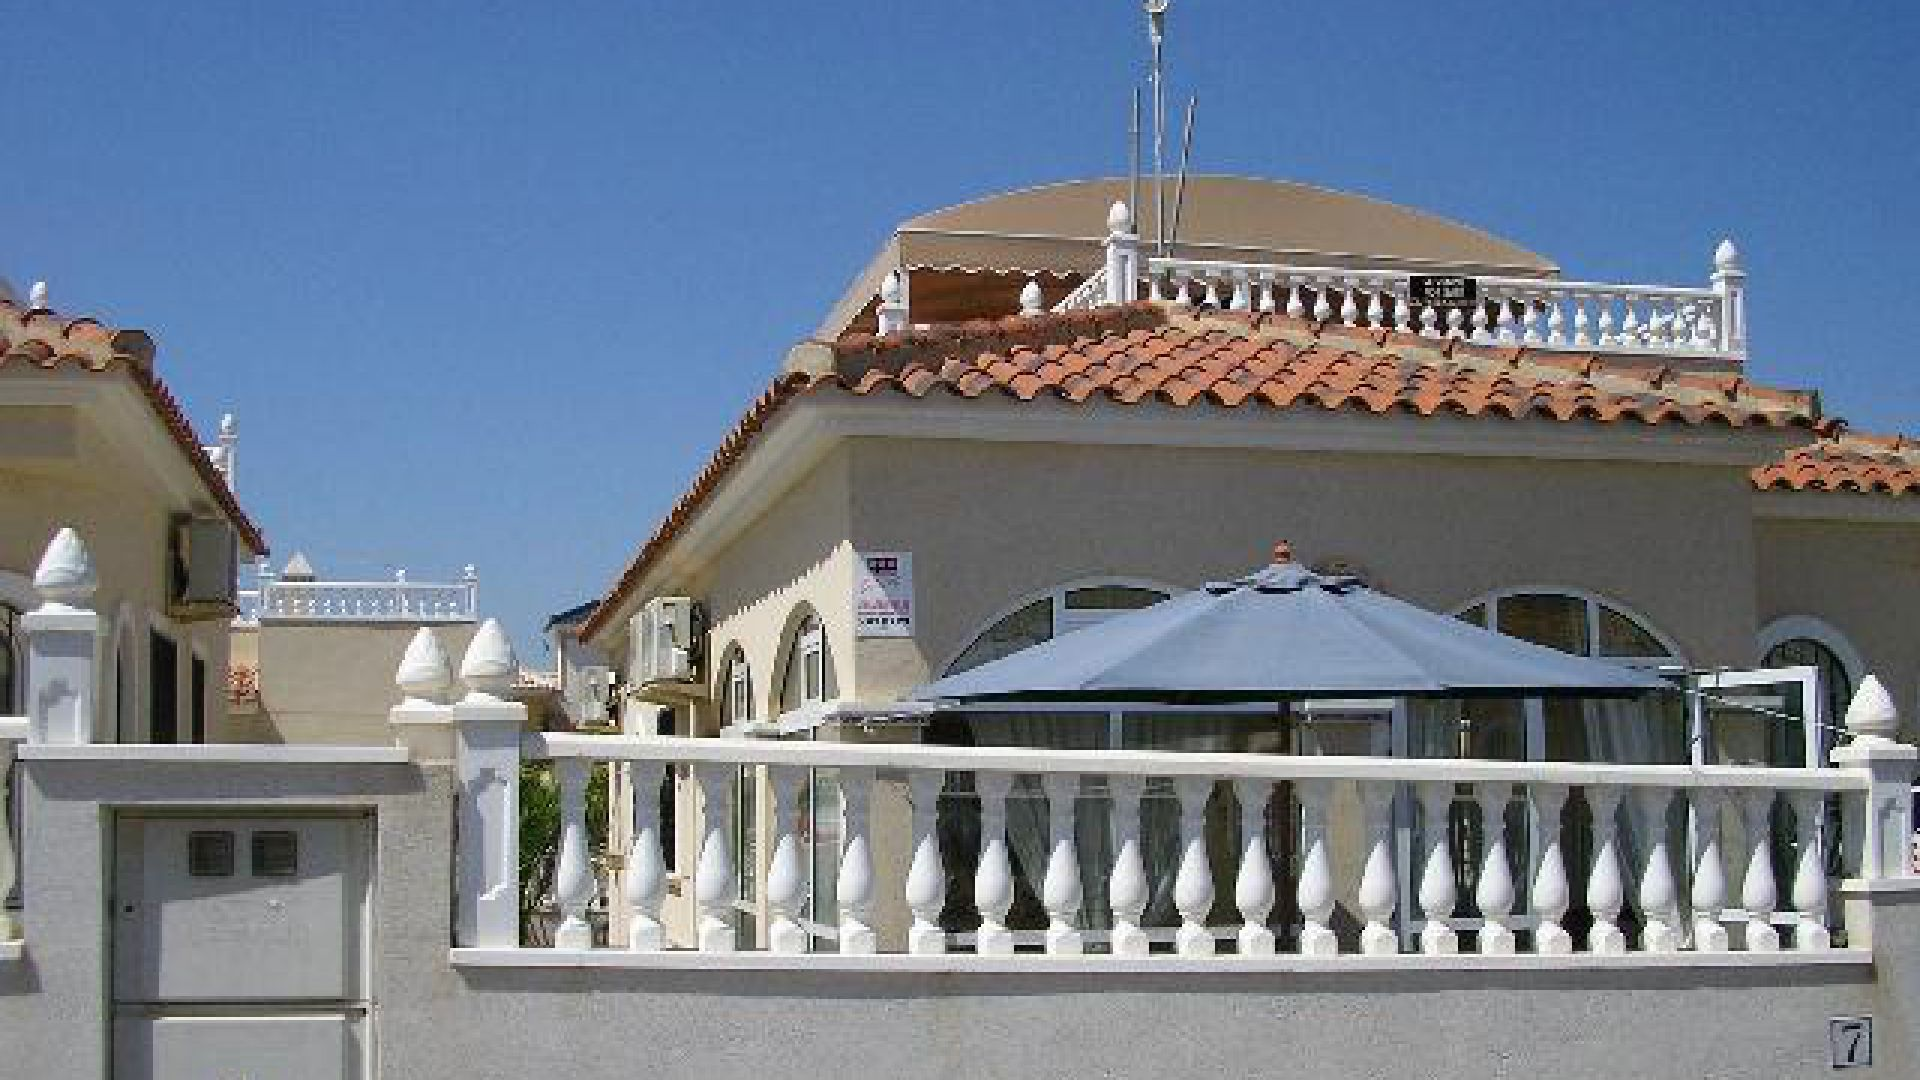 Bungalow in Algorfa, Alicante, Spain